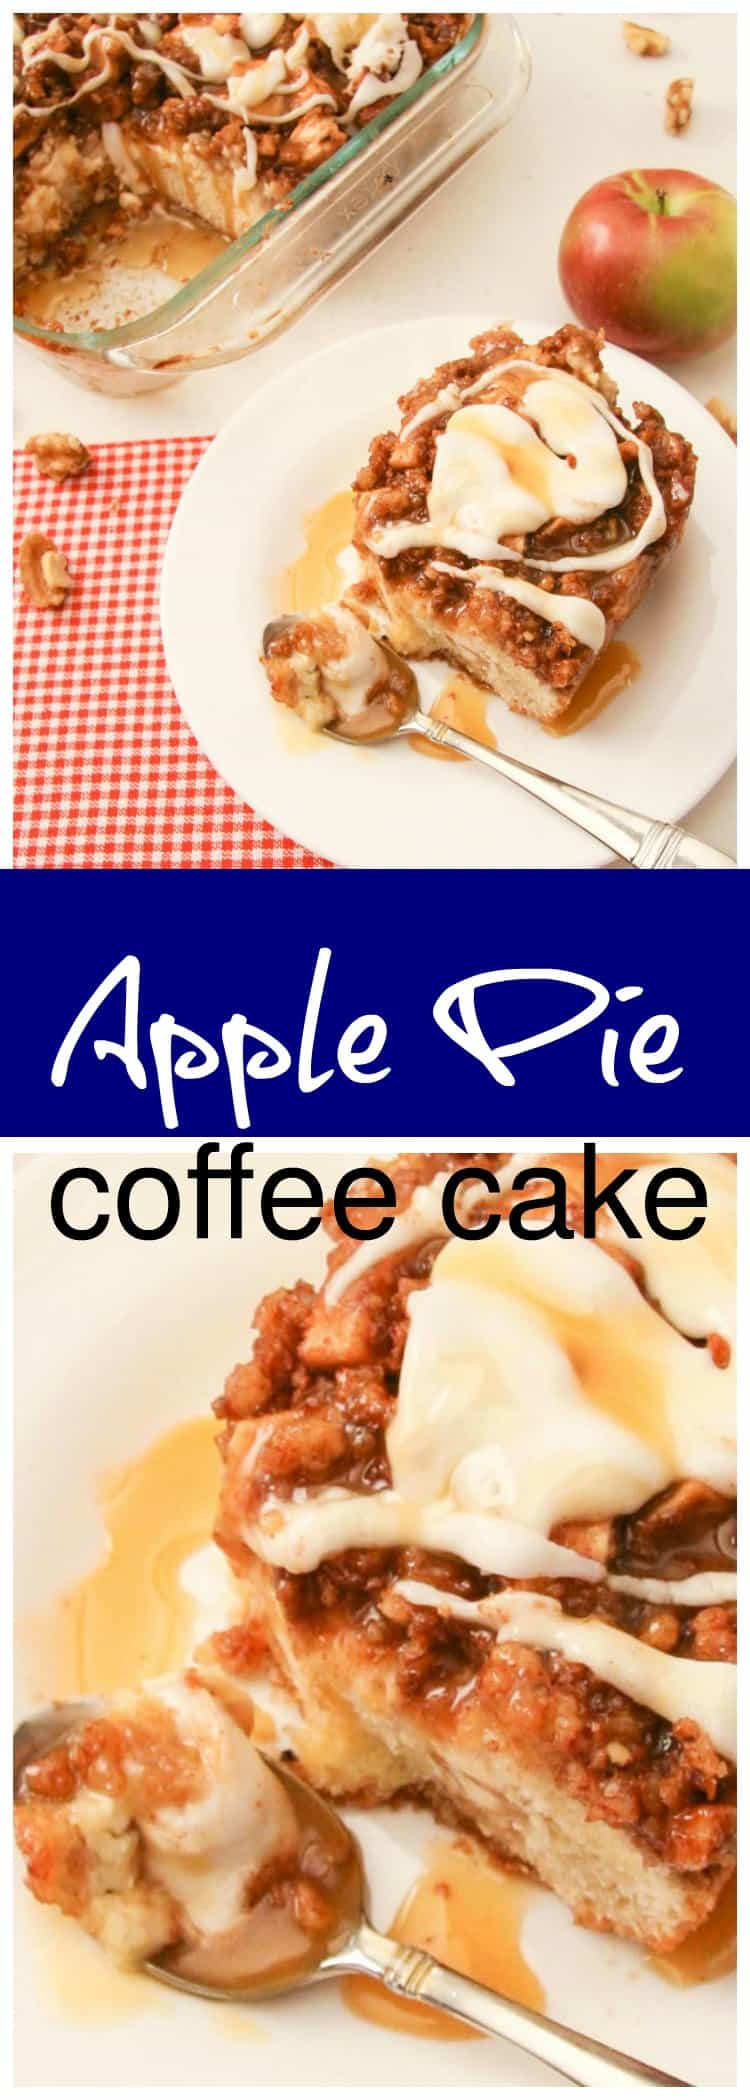 two pictures of apple pie coffee cake, one showing slice of coffee cake on white plate with apple to the side and background shows baking pan with coffee cake, the top is a close up shot of apple pie coffee cake